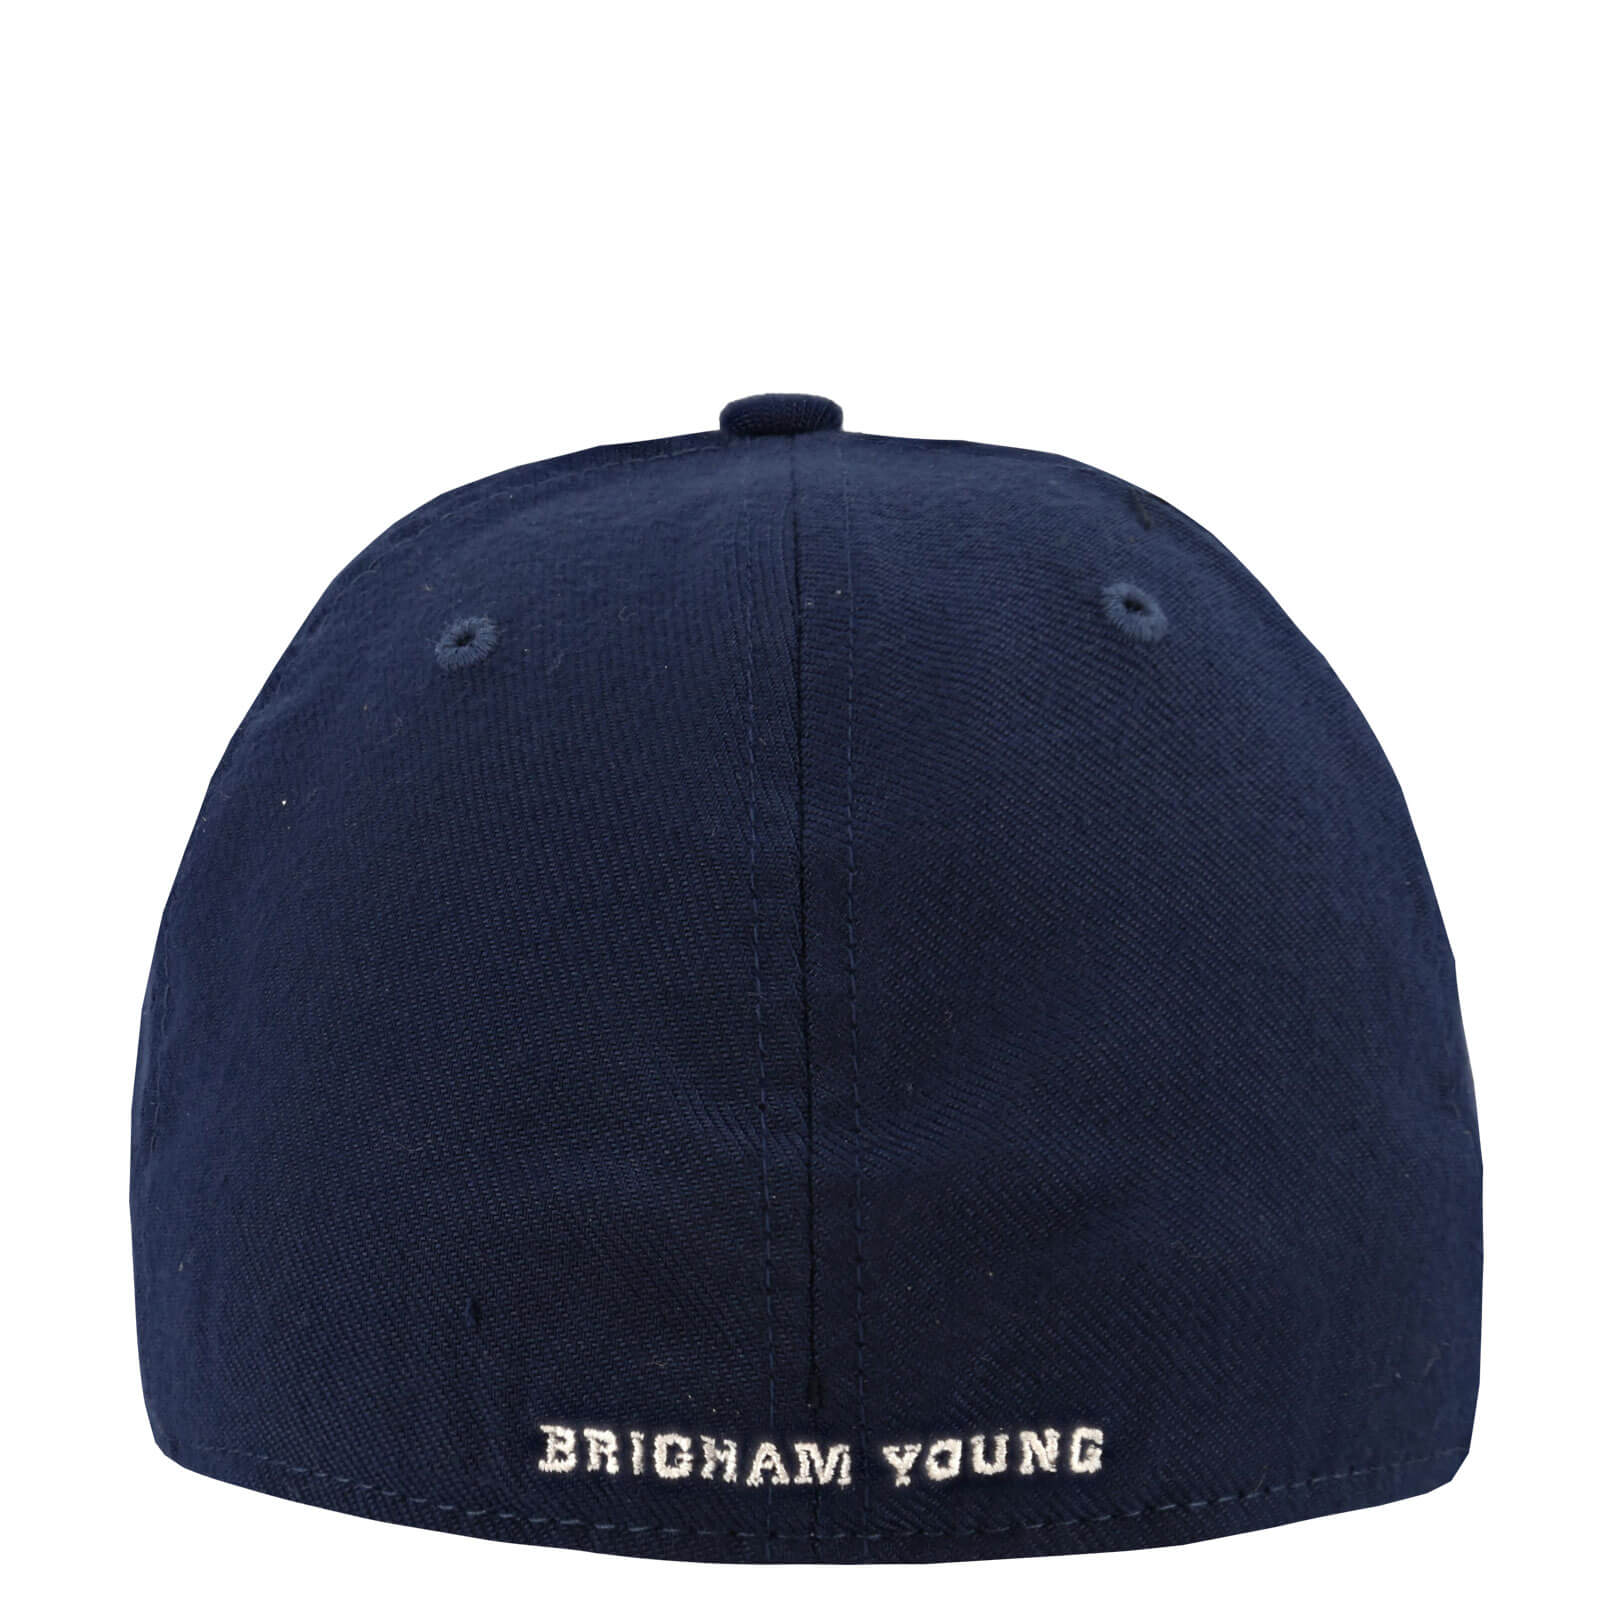 online store 9f1dc d9120 ... hot oval y flex fit byu hat nike 860d0 f3a8c